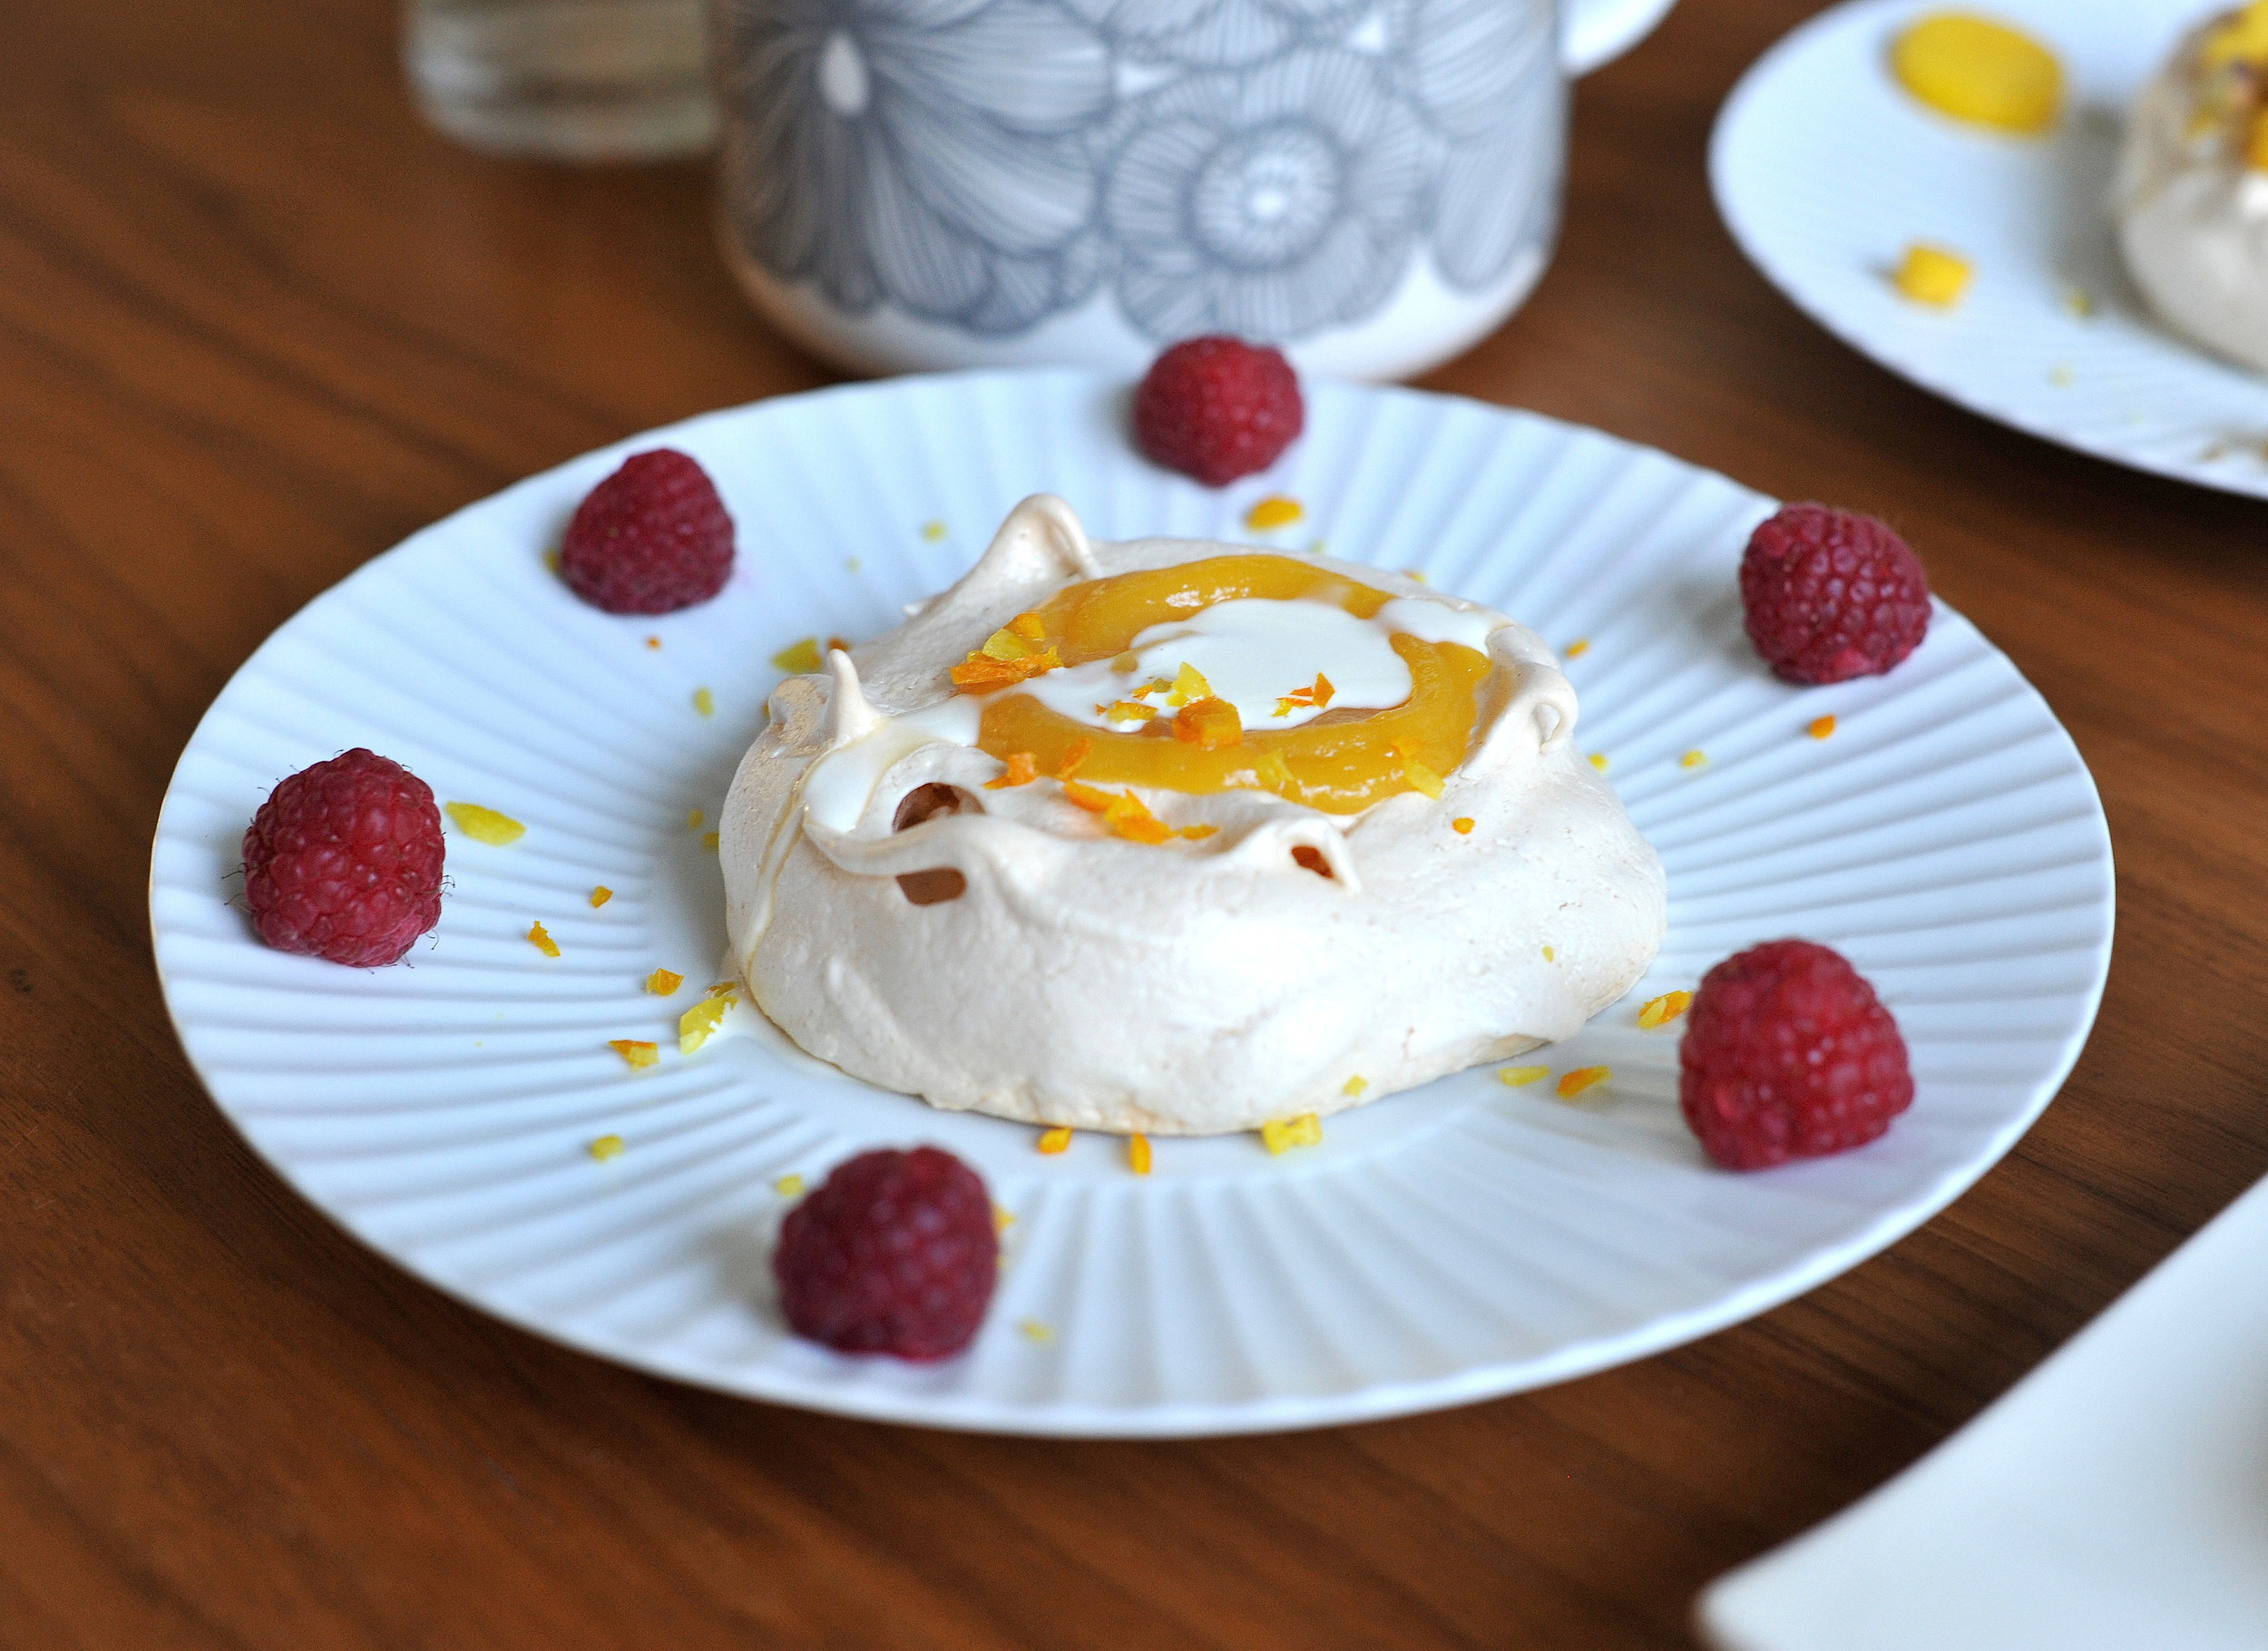 Meringue topped with lemon curd, zest of lemons and oranges served with raspberries and cream © Photography by Emmerline Smy